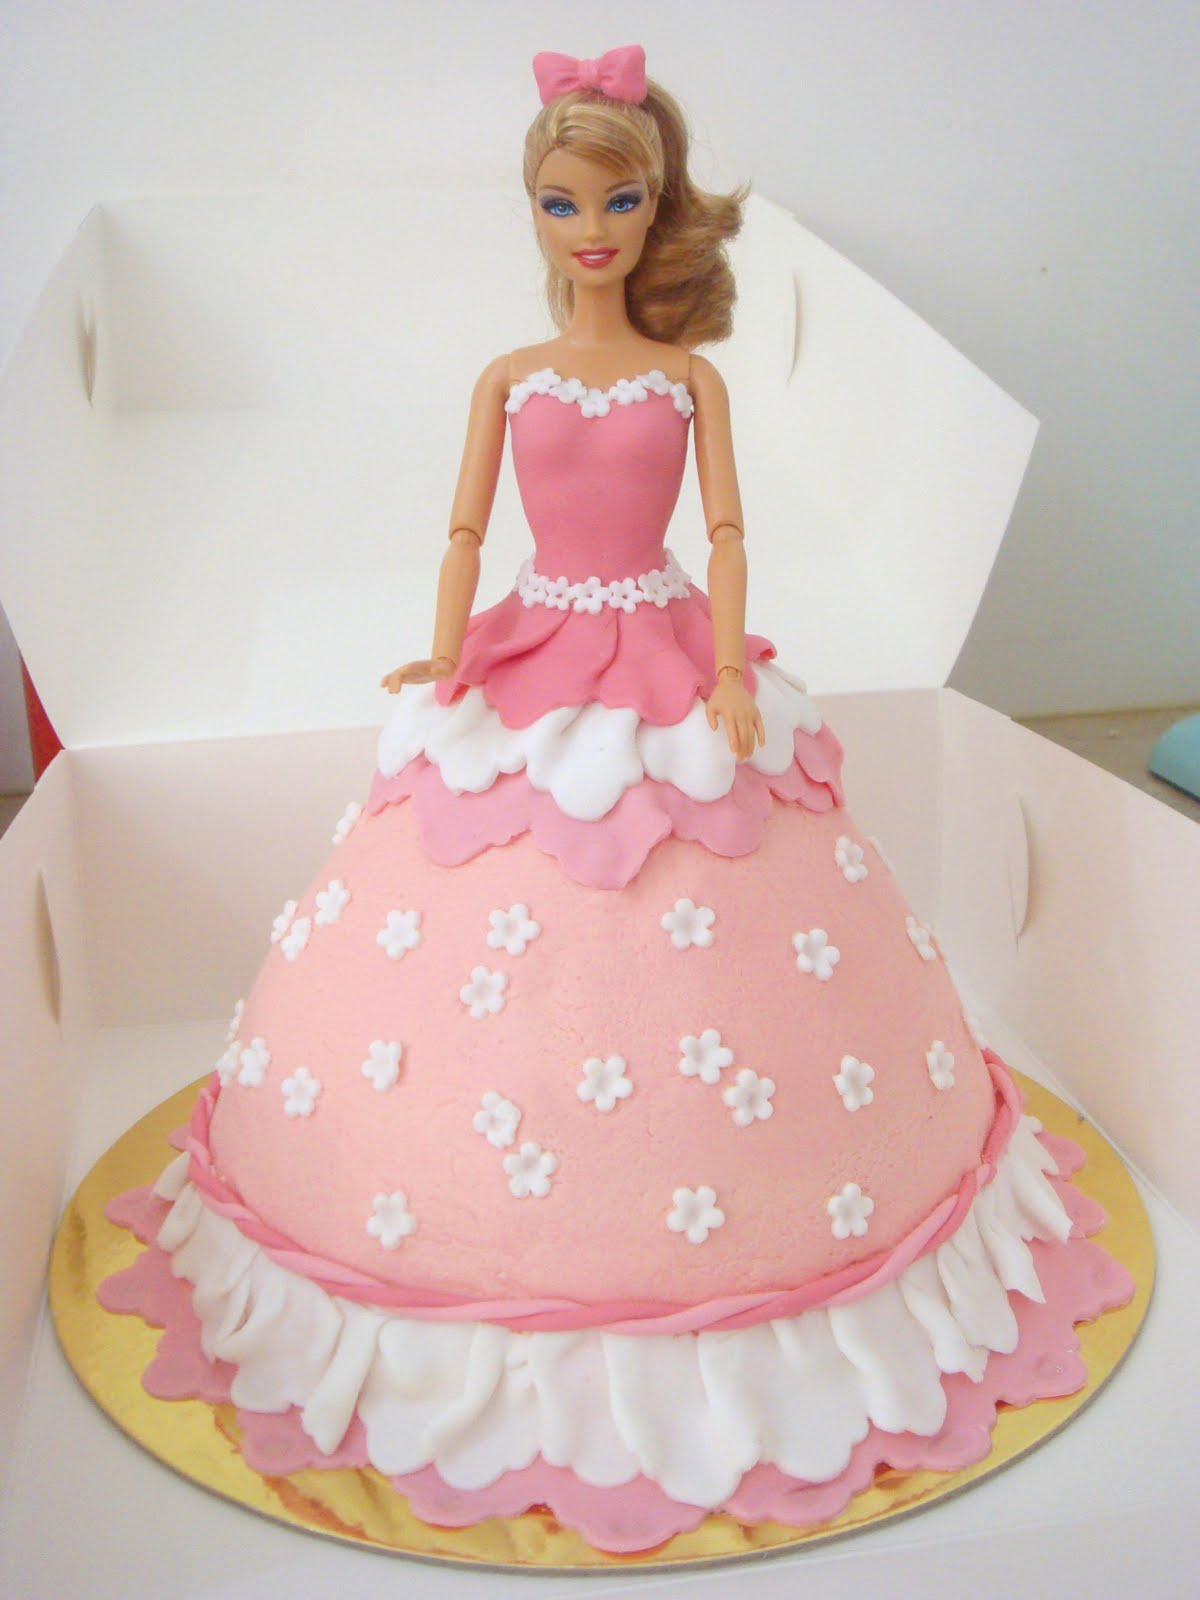 Images Of A Barbie Cake : butter hearts sugar: Barbie Doll Cake